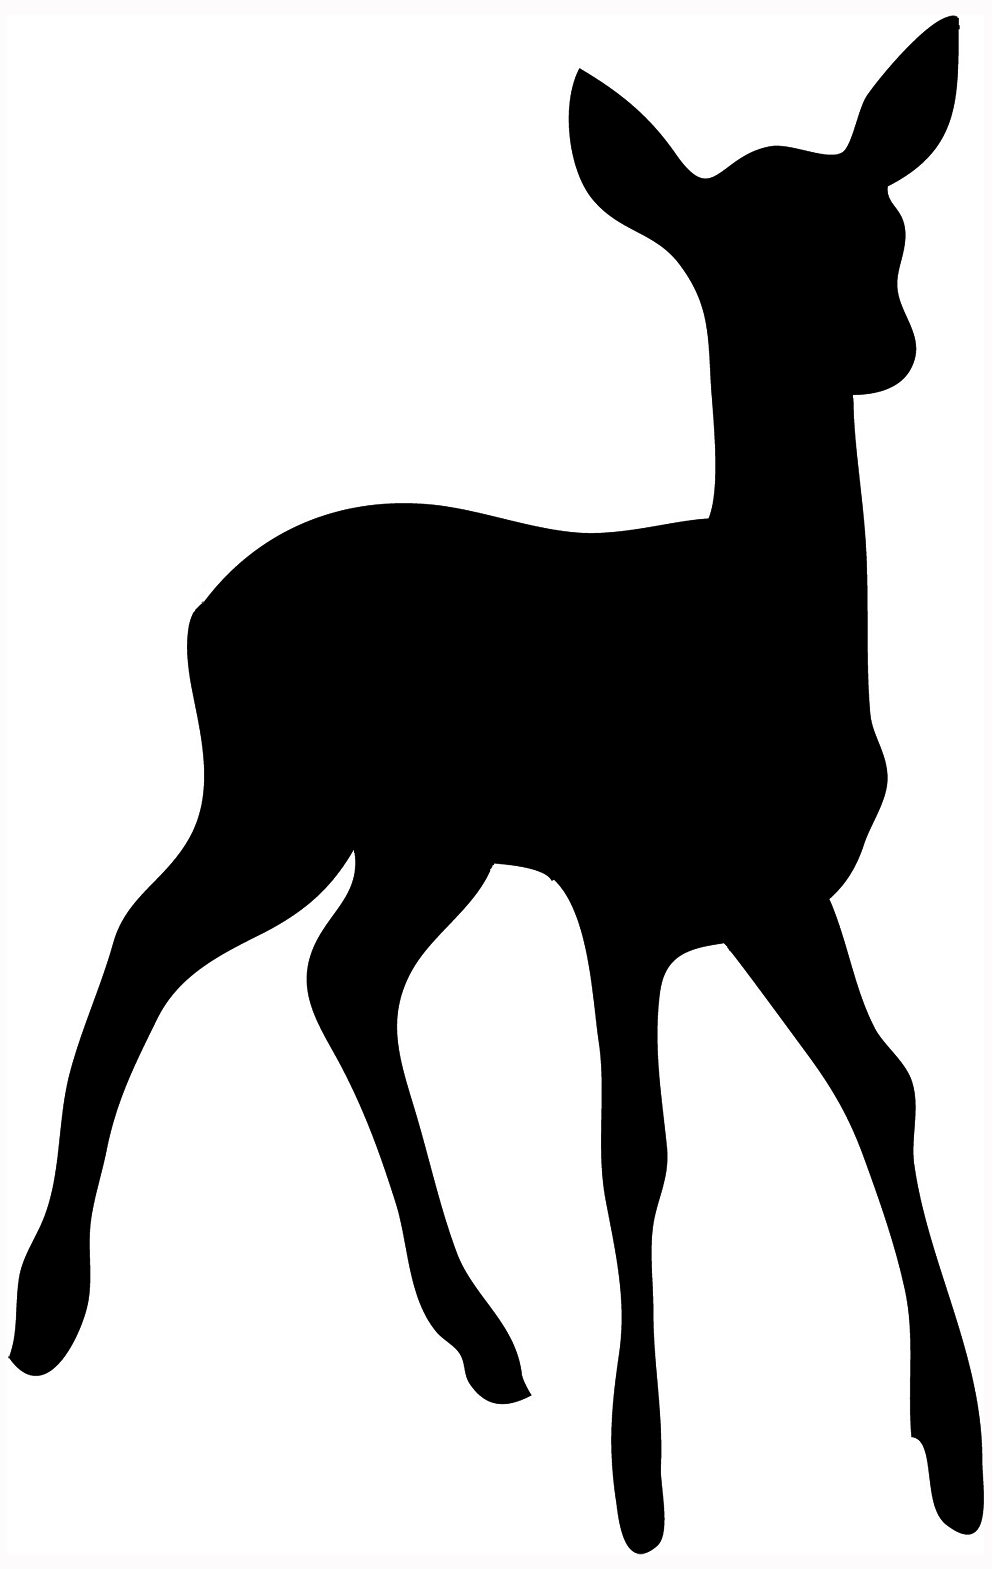 Deer clipart silhouette clipart royalty free library Free Animal Silhouettes, Download Free Clip Art, Free Clip Art on ... clipart royalty free library